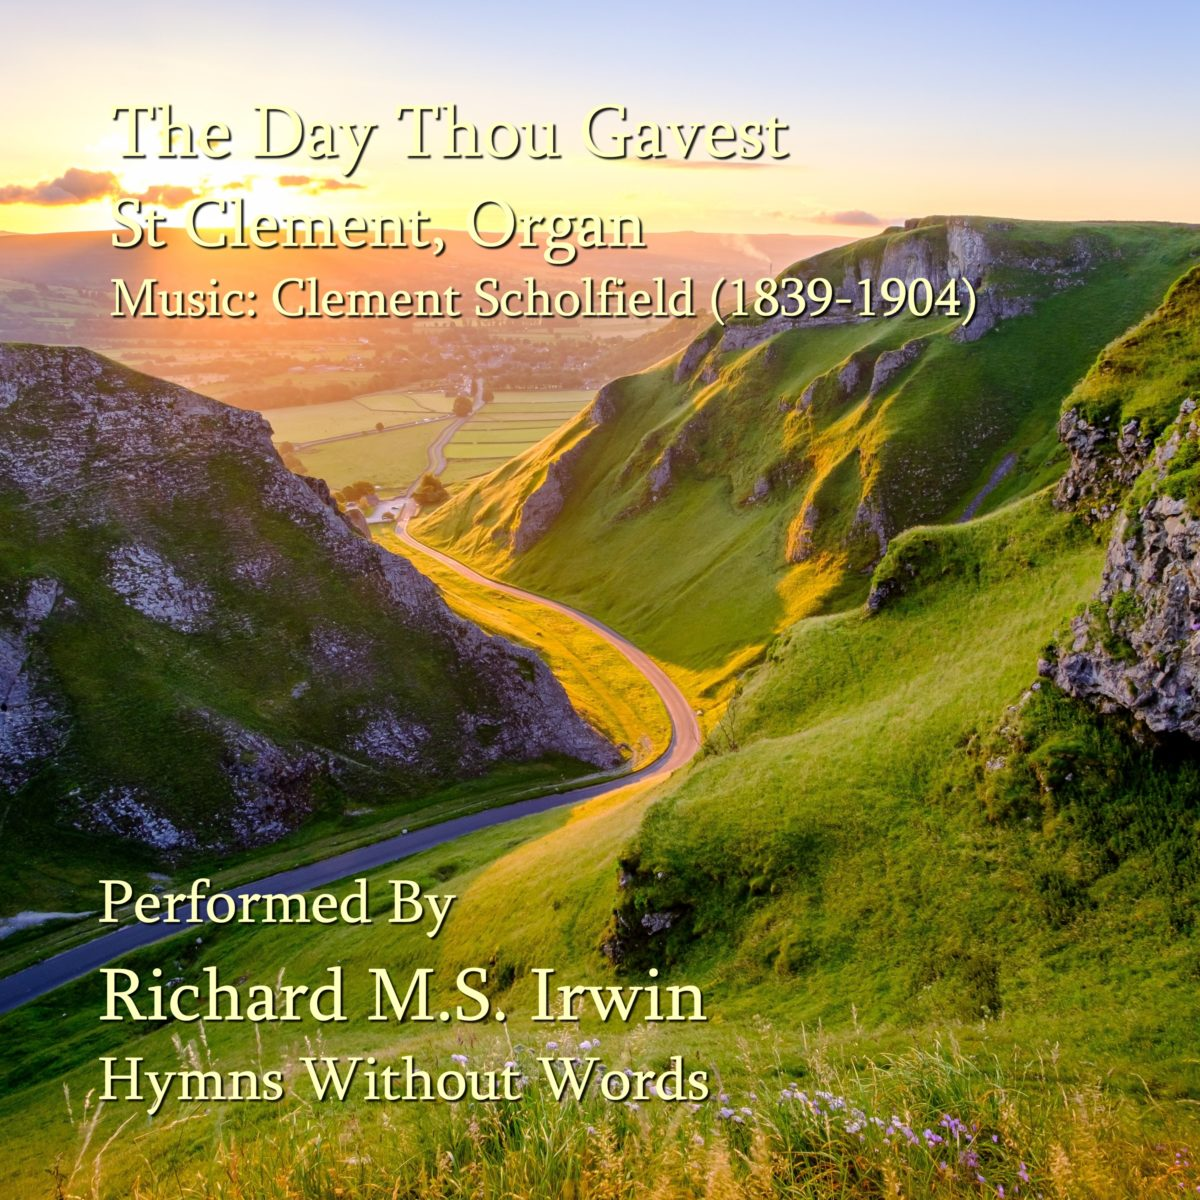 The Day Thou Gavest (St Clement, Organ, 5 Verses)